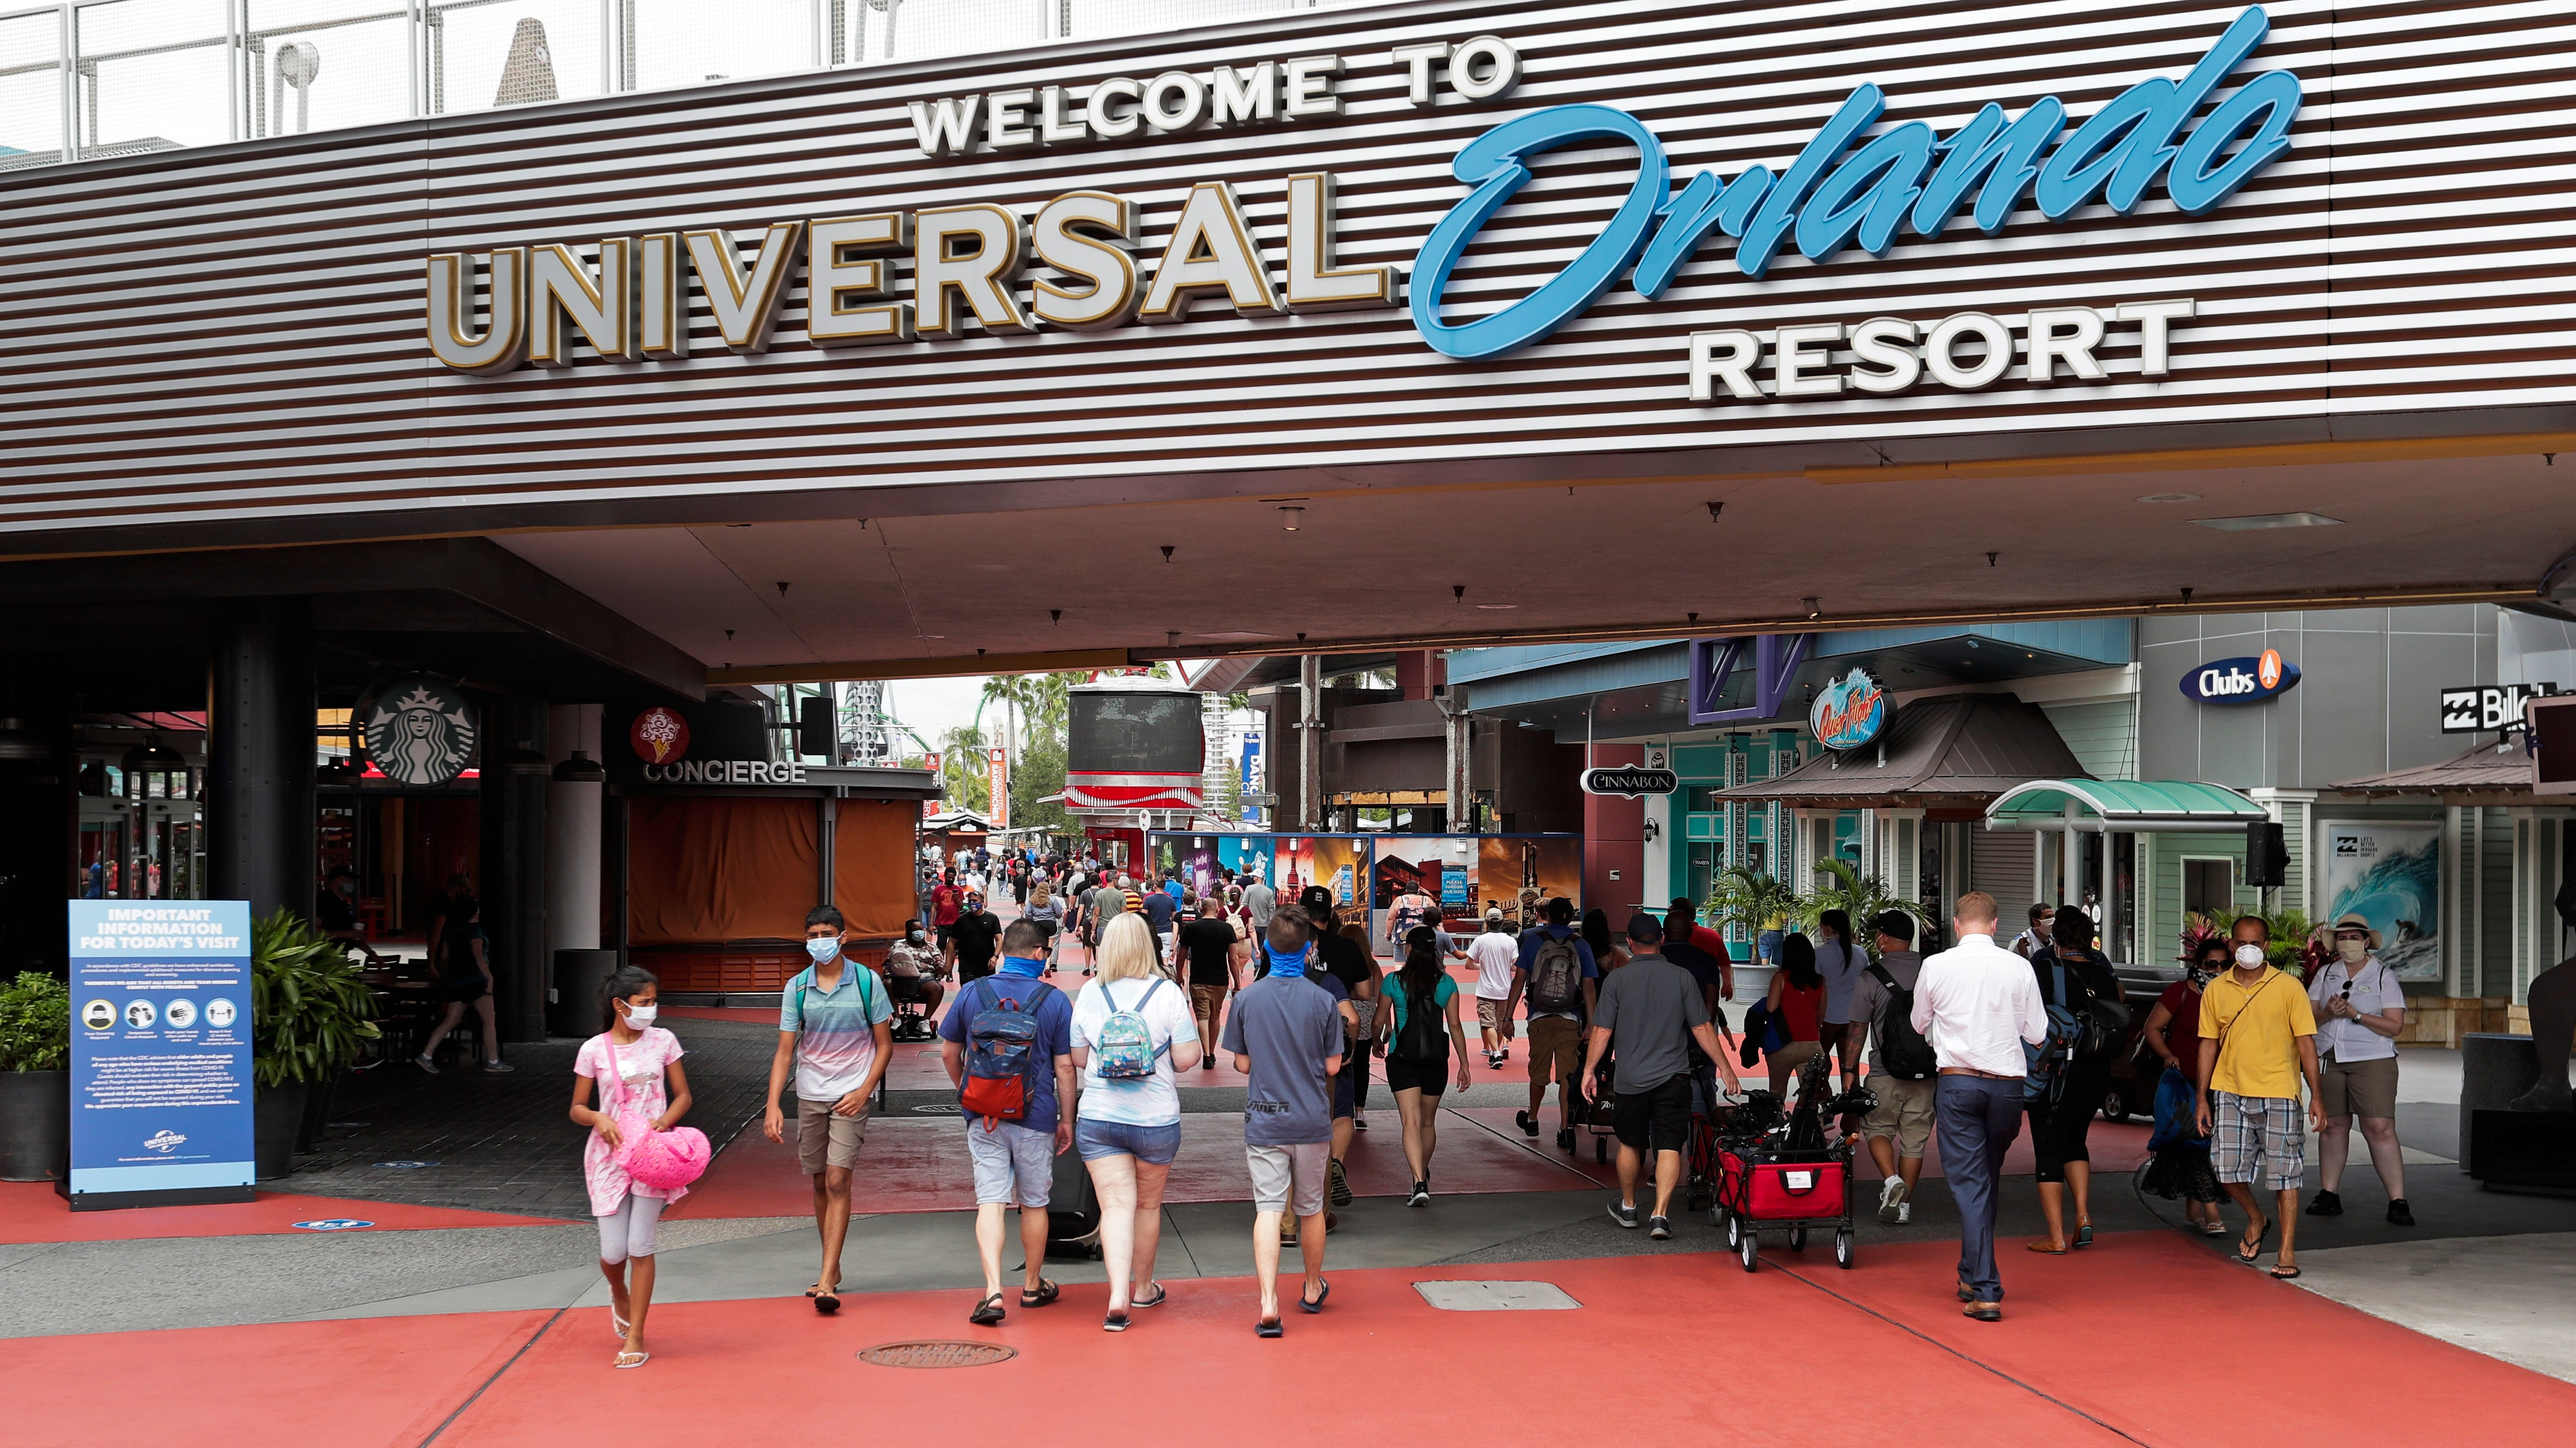 Universal Orlando, Disney World drop mask requirement outdoors, but visitors still must wear them on rides, indoors